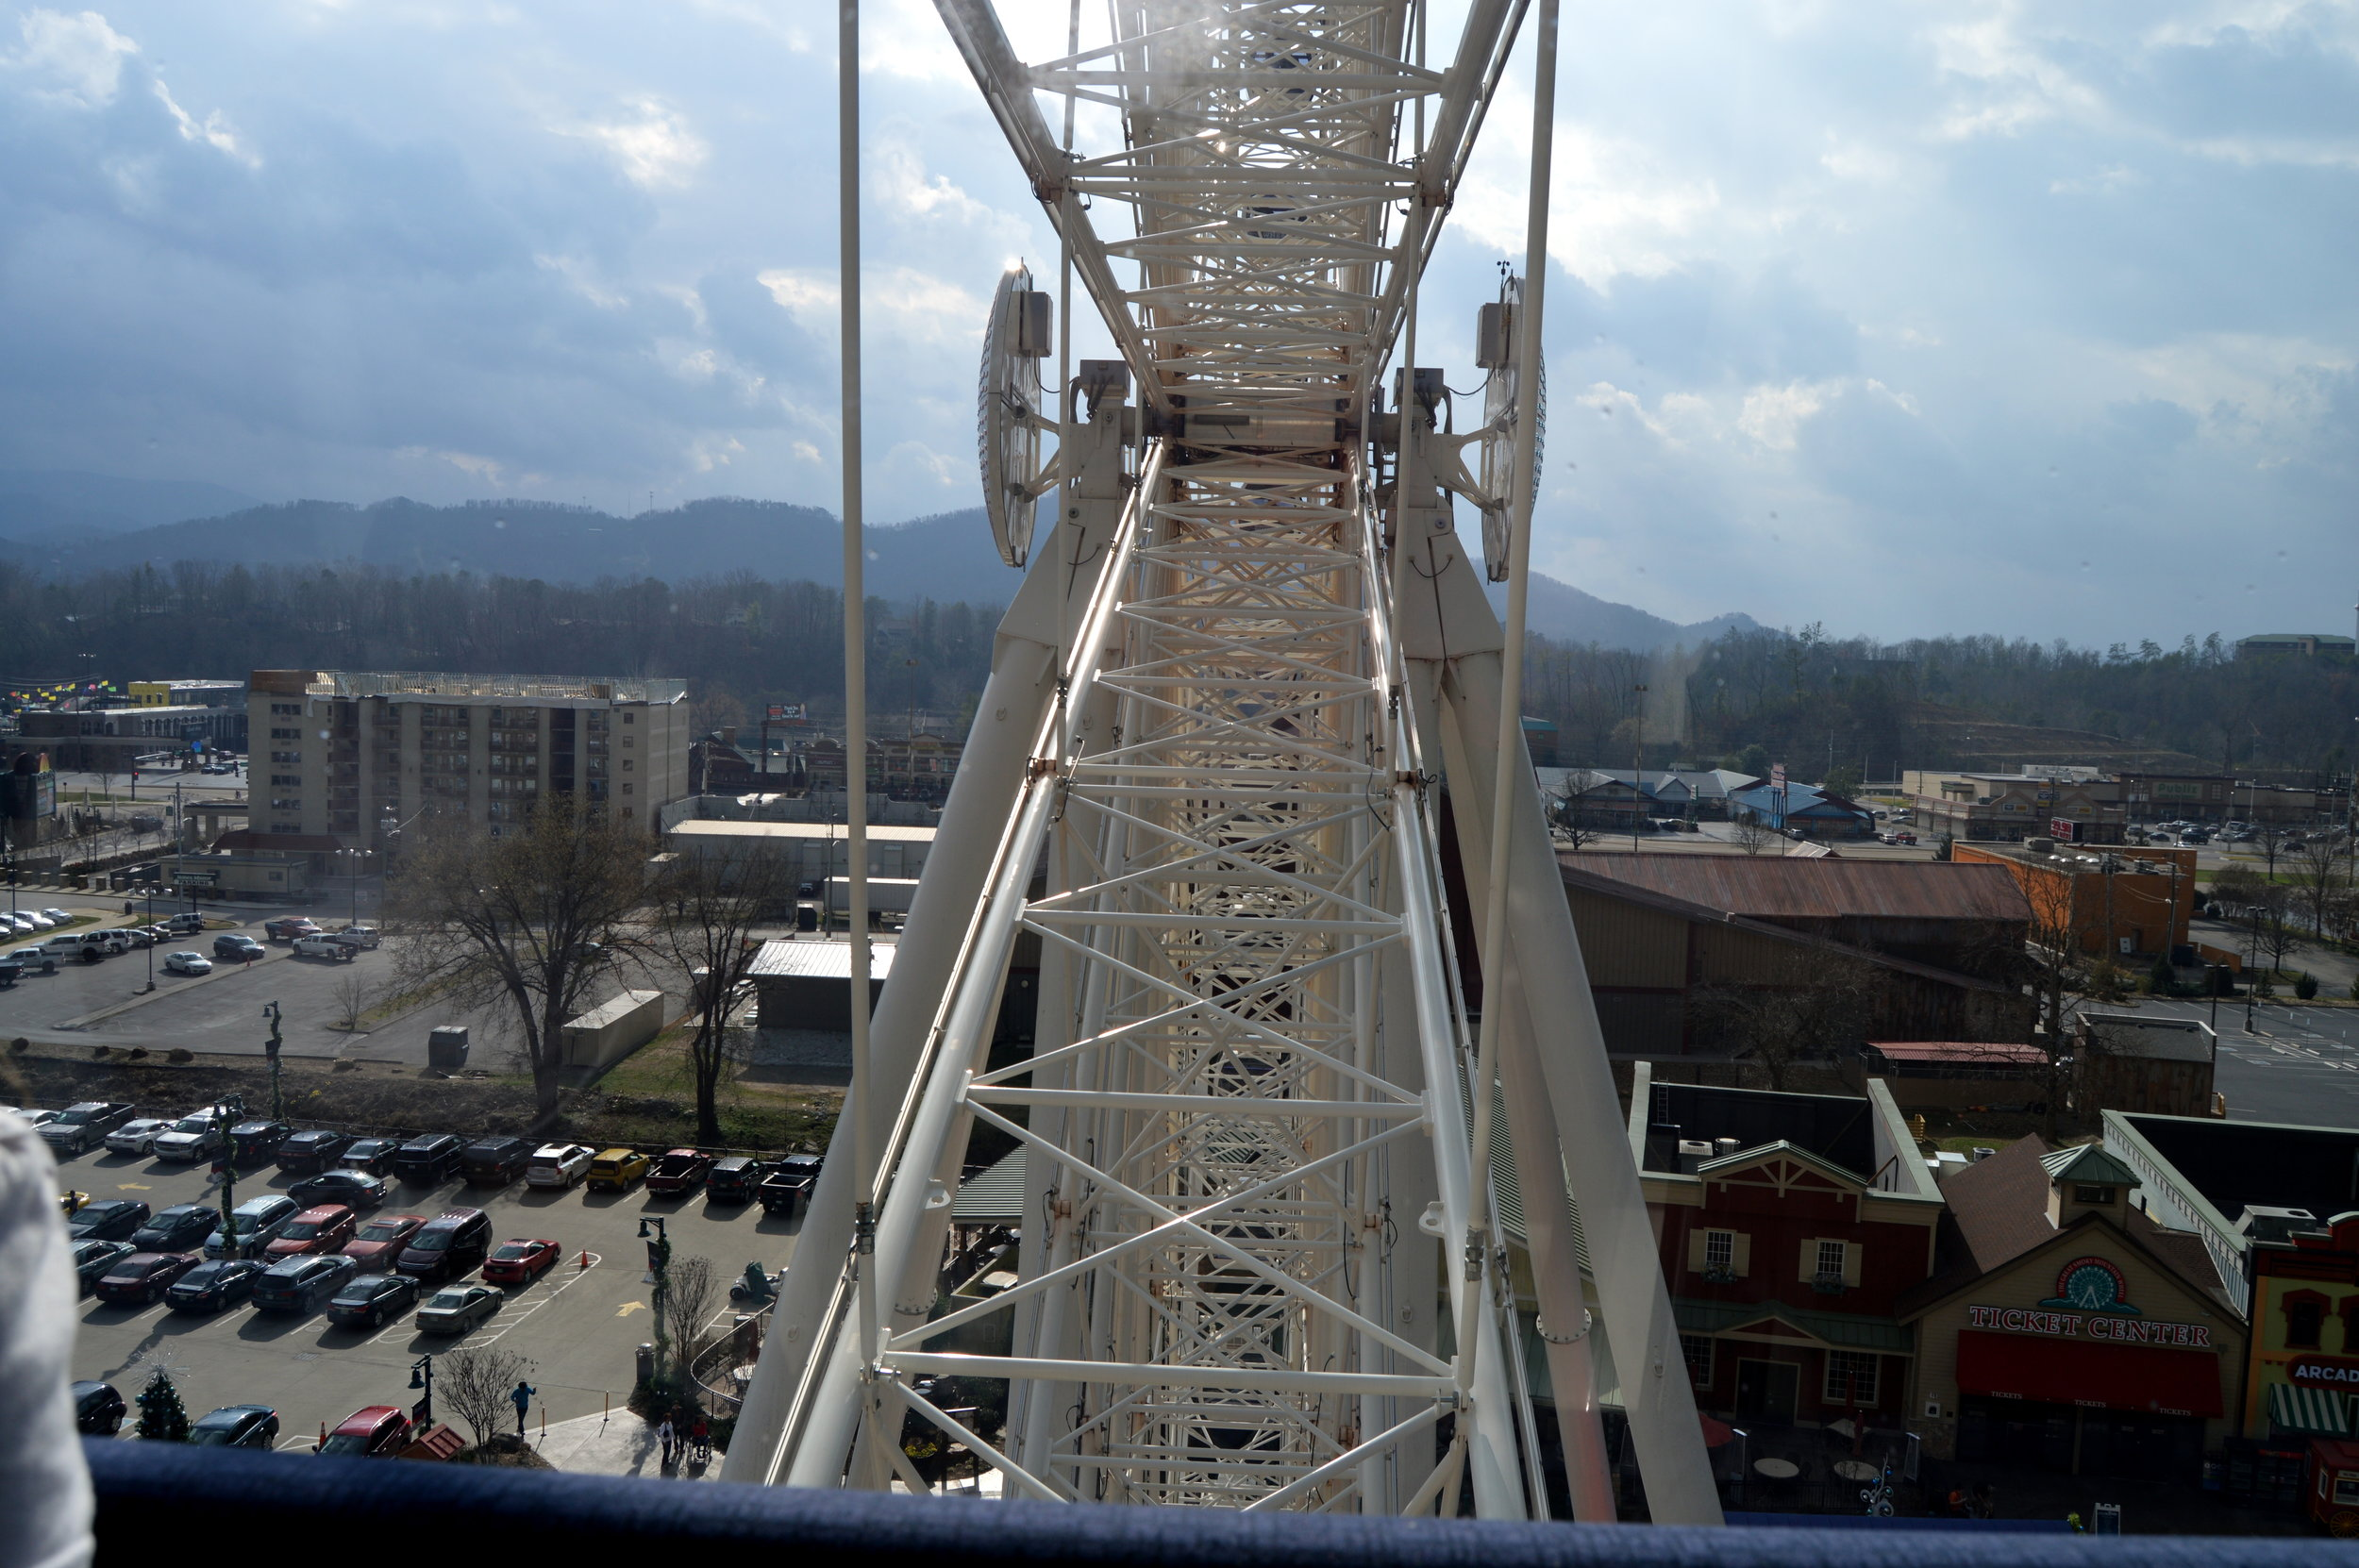 The Great Smoky Mountain Wheel is 200 feet high.